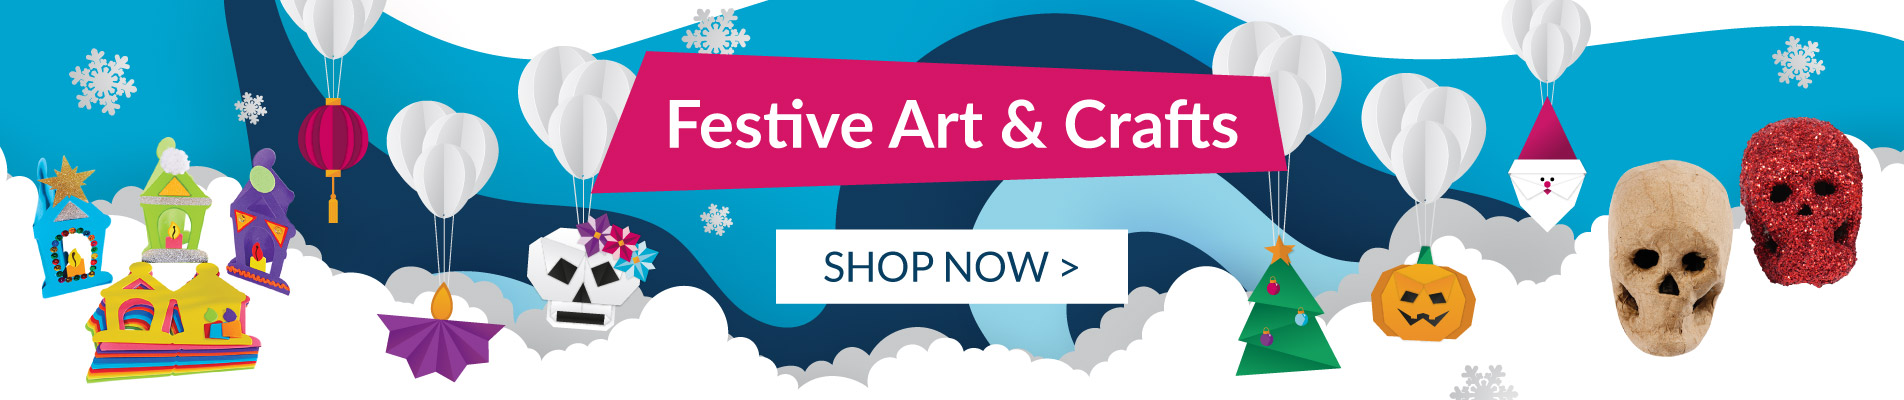 Discover Festive Art and Crafts